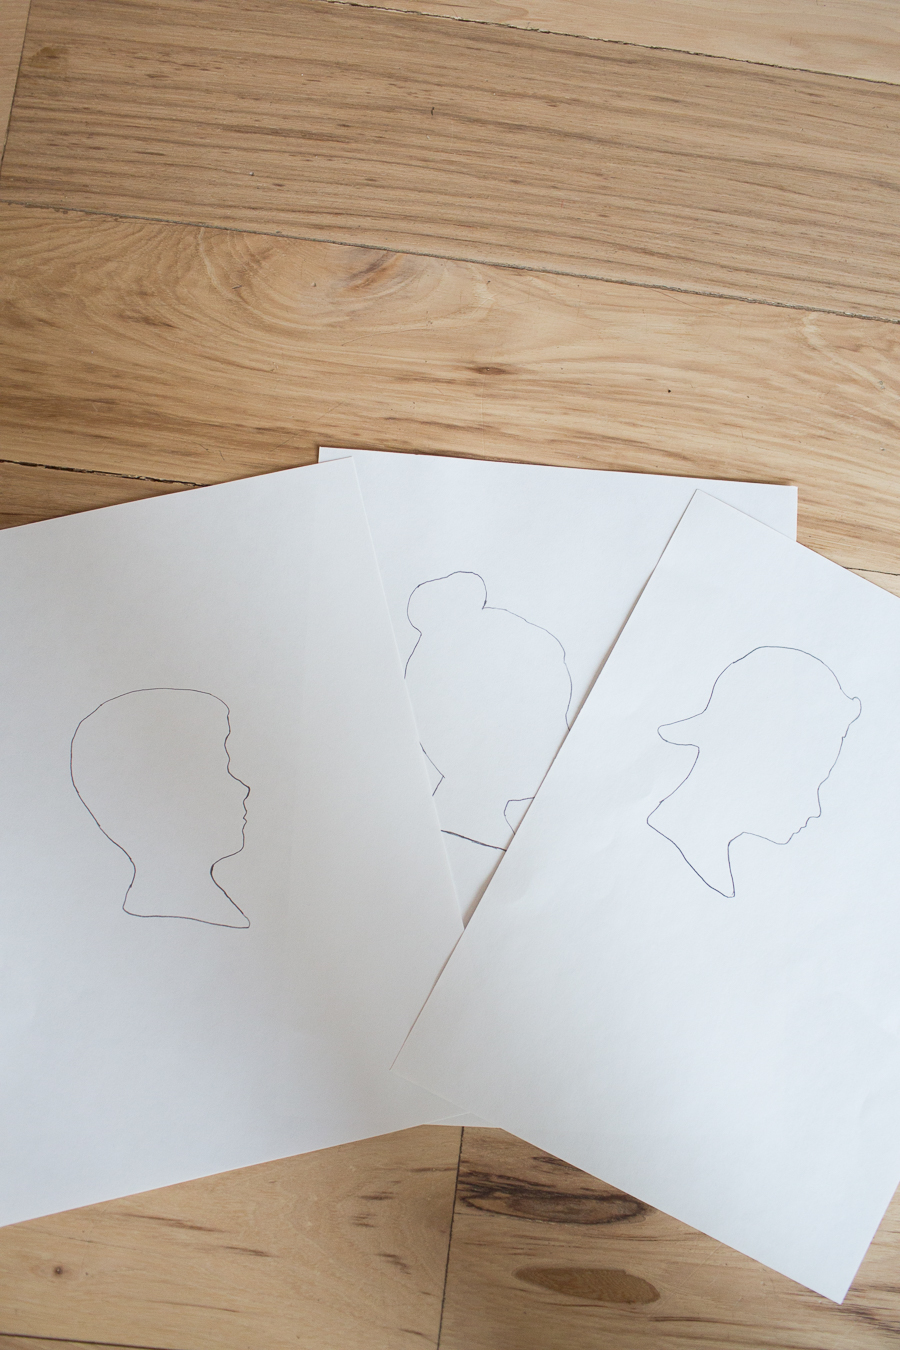 three different silhouette drawings